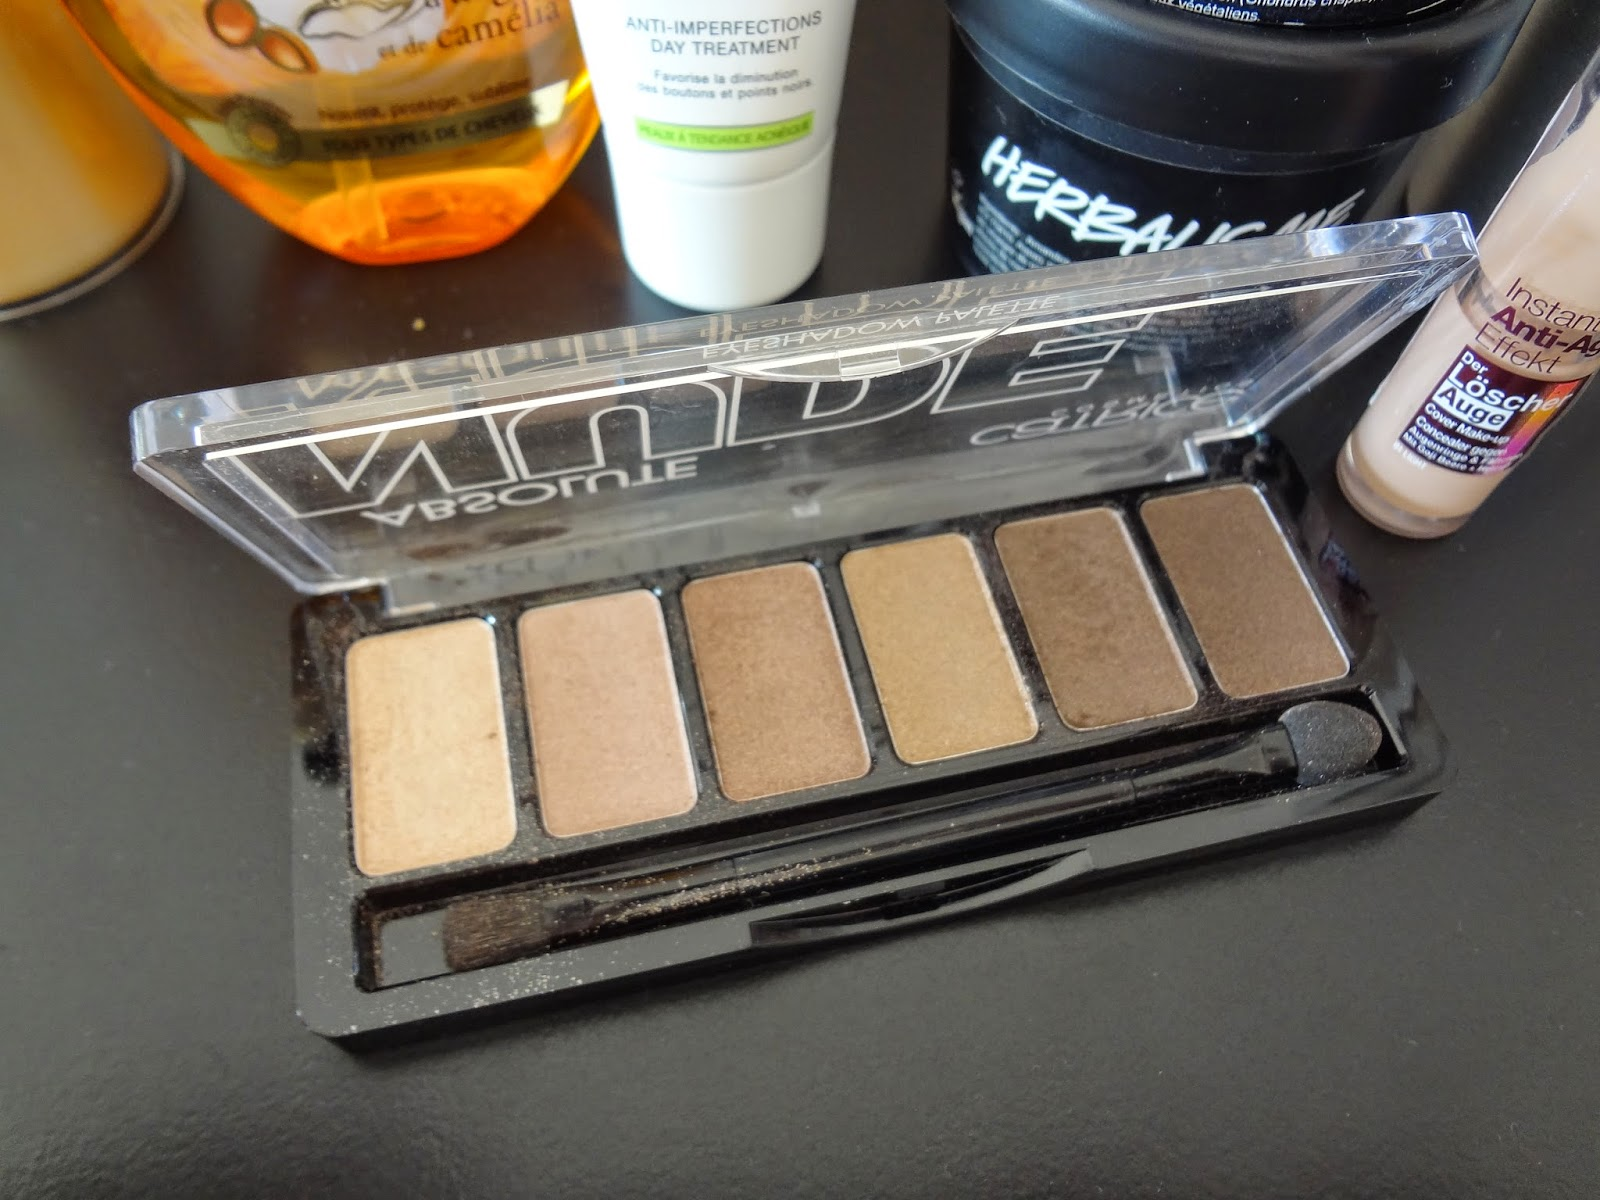 produits-beaute-decevants-disappointing-beauty-products-flops-elnett-protection-chaleur-garnier-ultra-doux-huile-merveilleuse-noreva-actipur-creme-anti-imperfections-catrice-make-up-absolute-nude-fards-yeux-palette-lush-aqua-marina-herbalisme-nettoyant-gemey-maybelline-instant-anti-age-effaceur-yeux-eraser-phyto-phytoapaisant-sanoflore-eau-rose-organic-bio-tangle-teezer-compo-ingredients-silicones